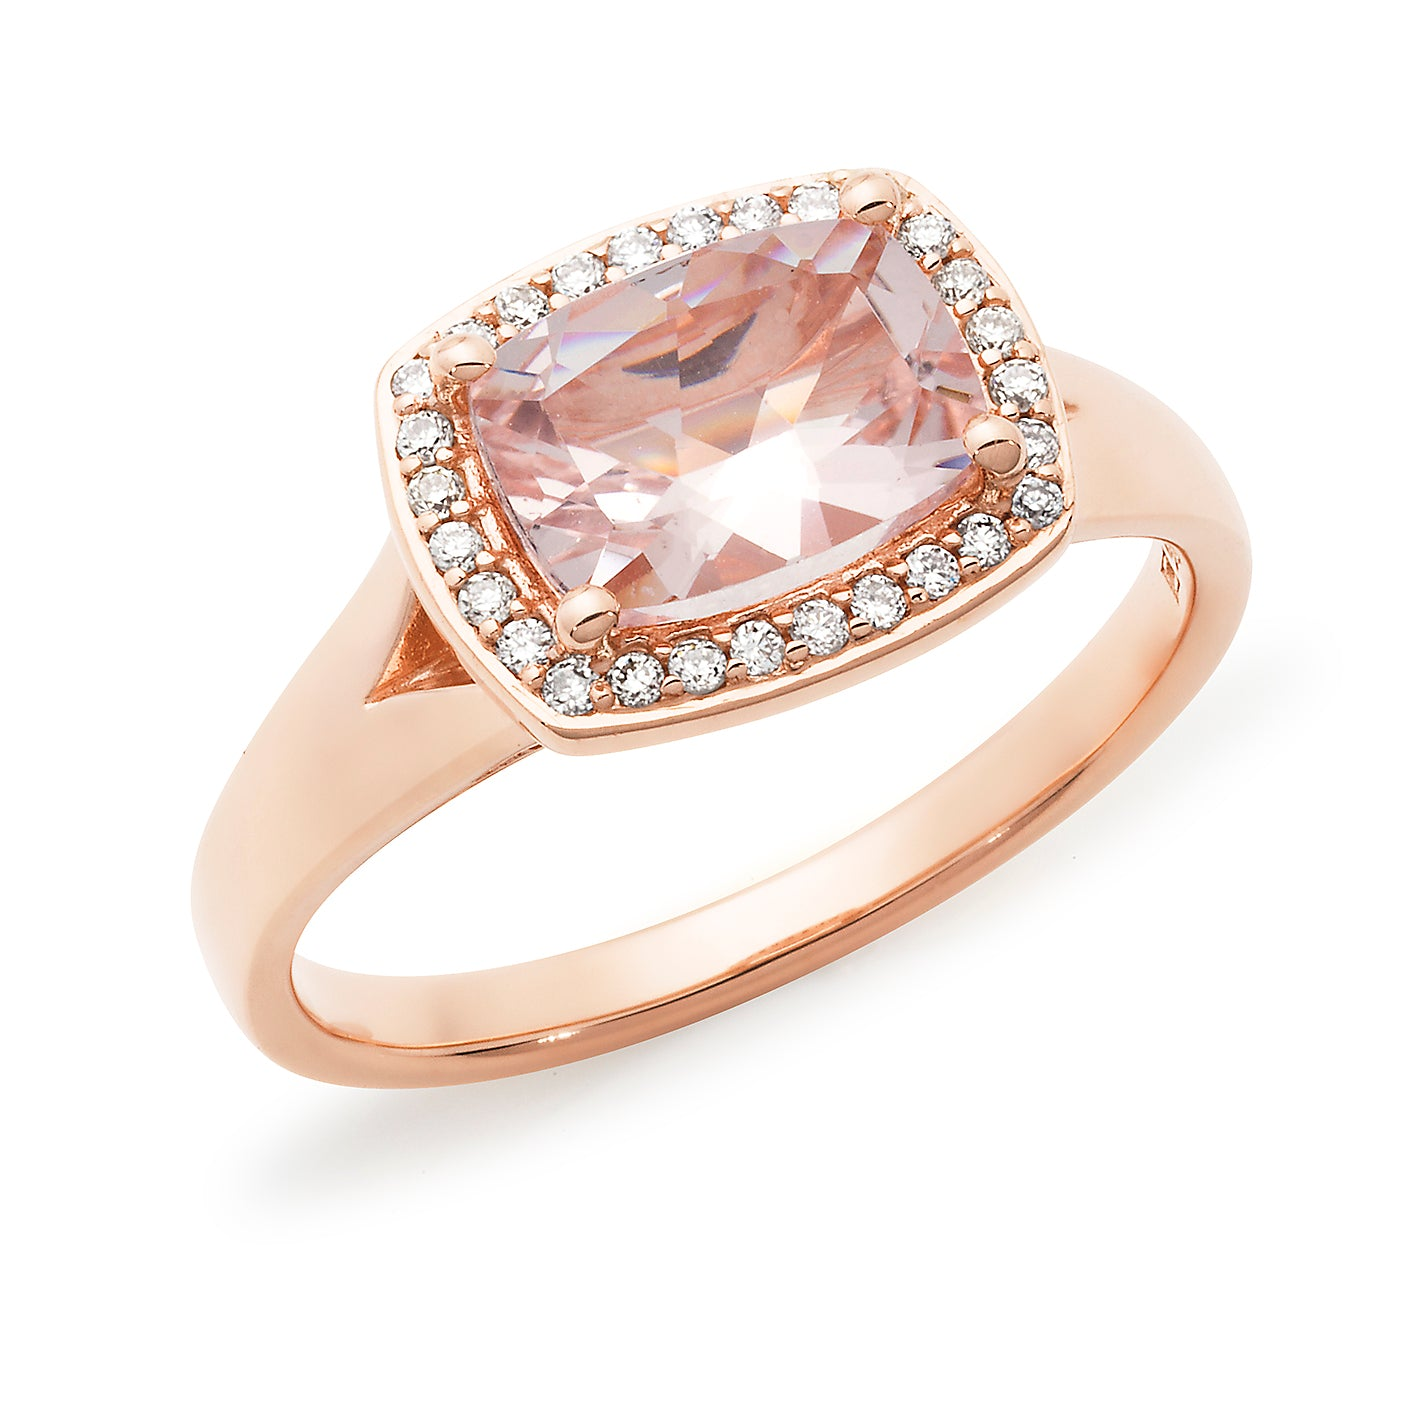 'Madeline' Morganite & Diamond Halo Ring